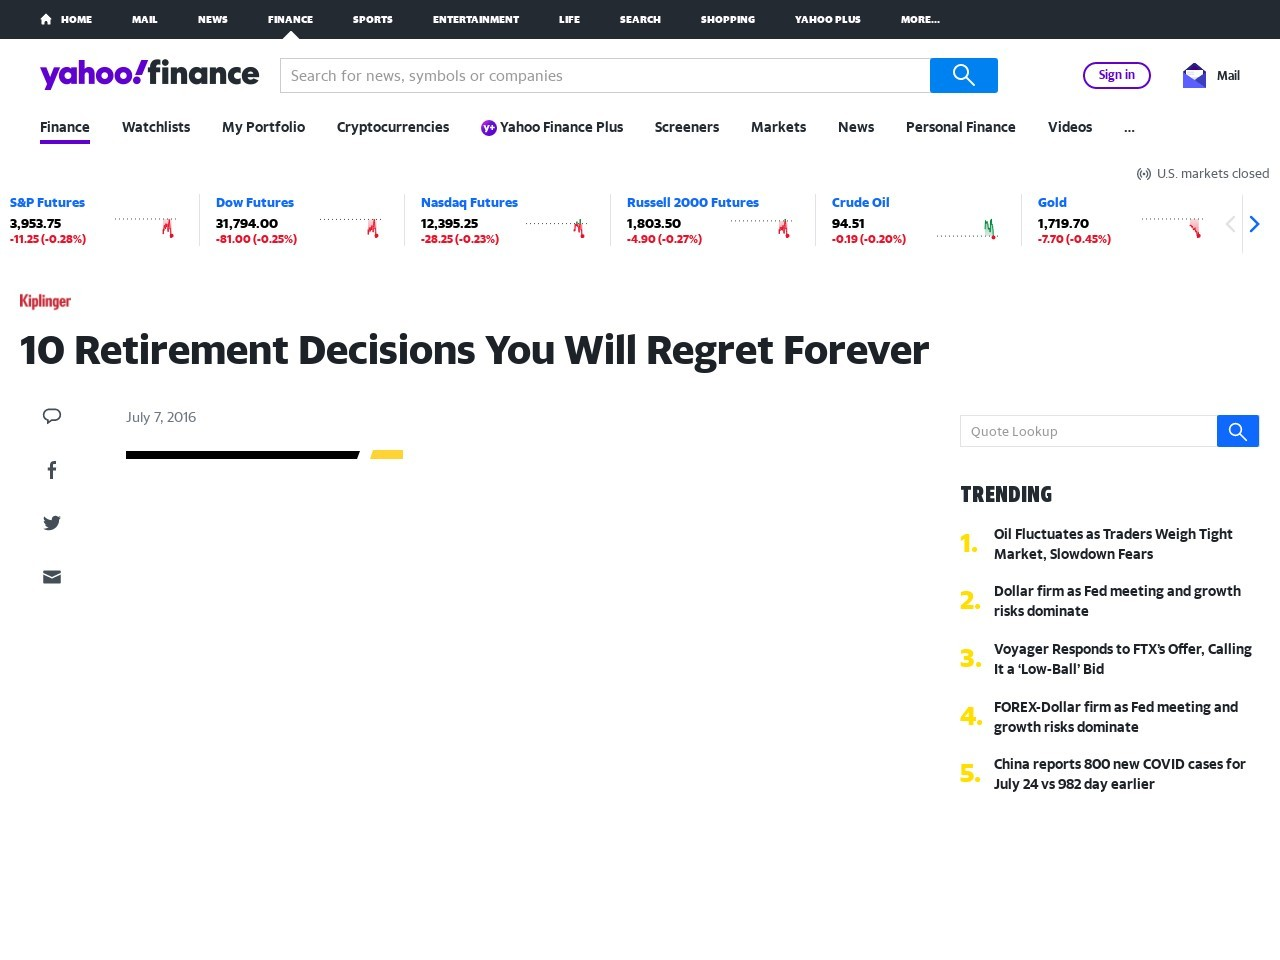 10 Retirement Decisions You Will Regret Forever